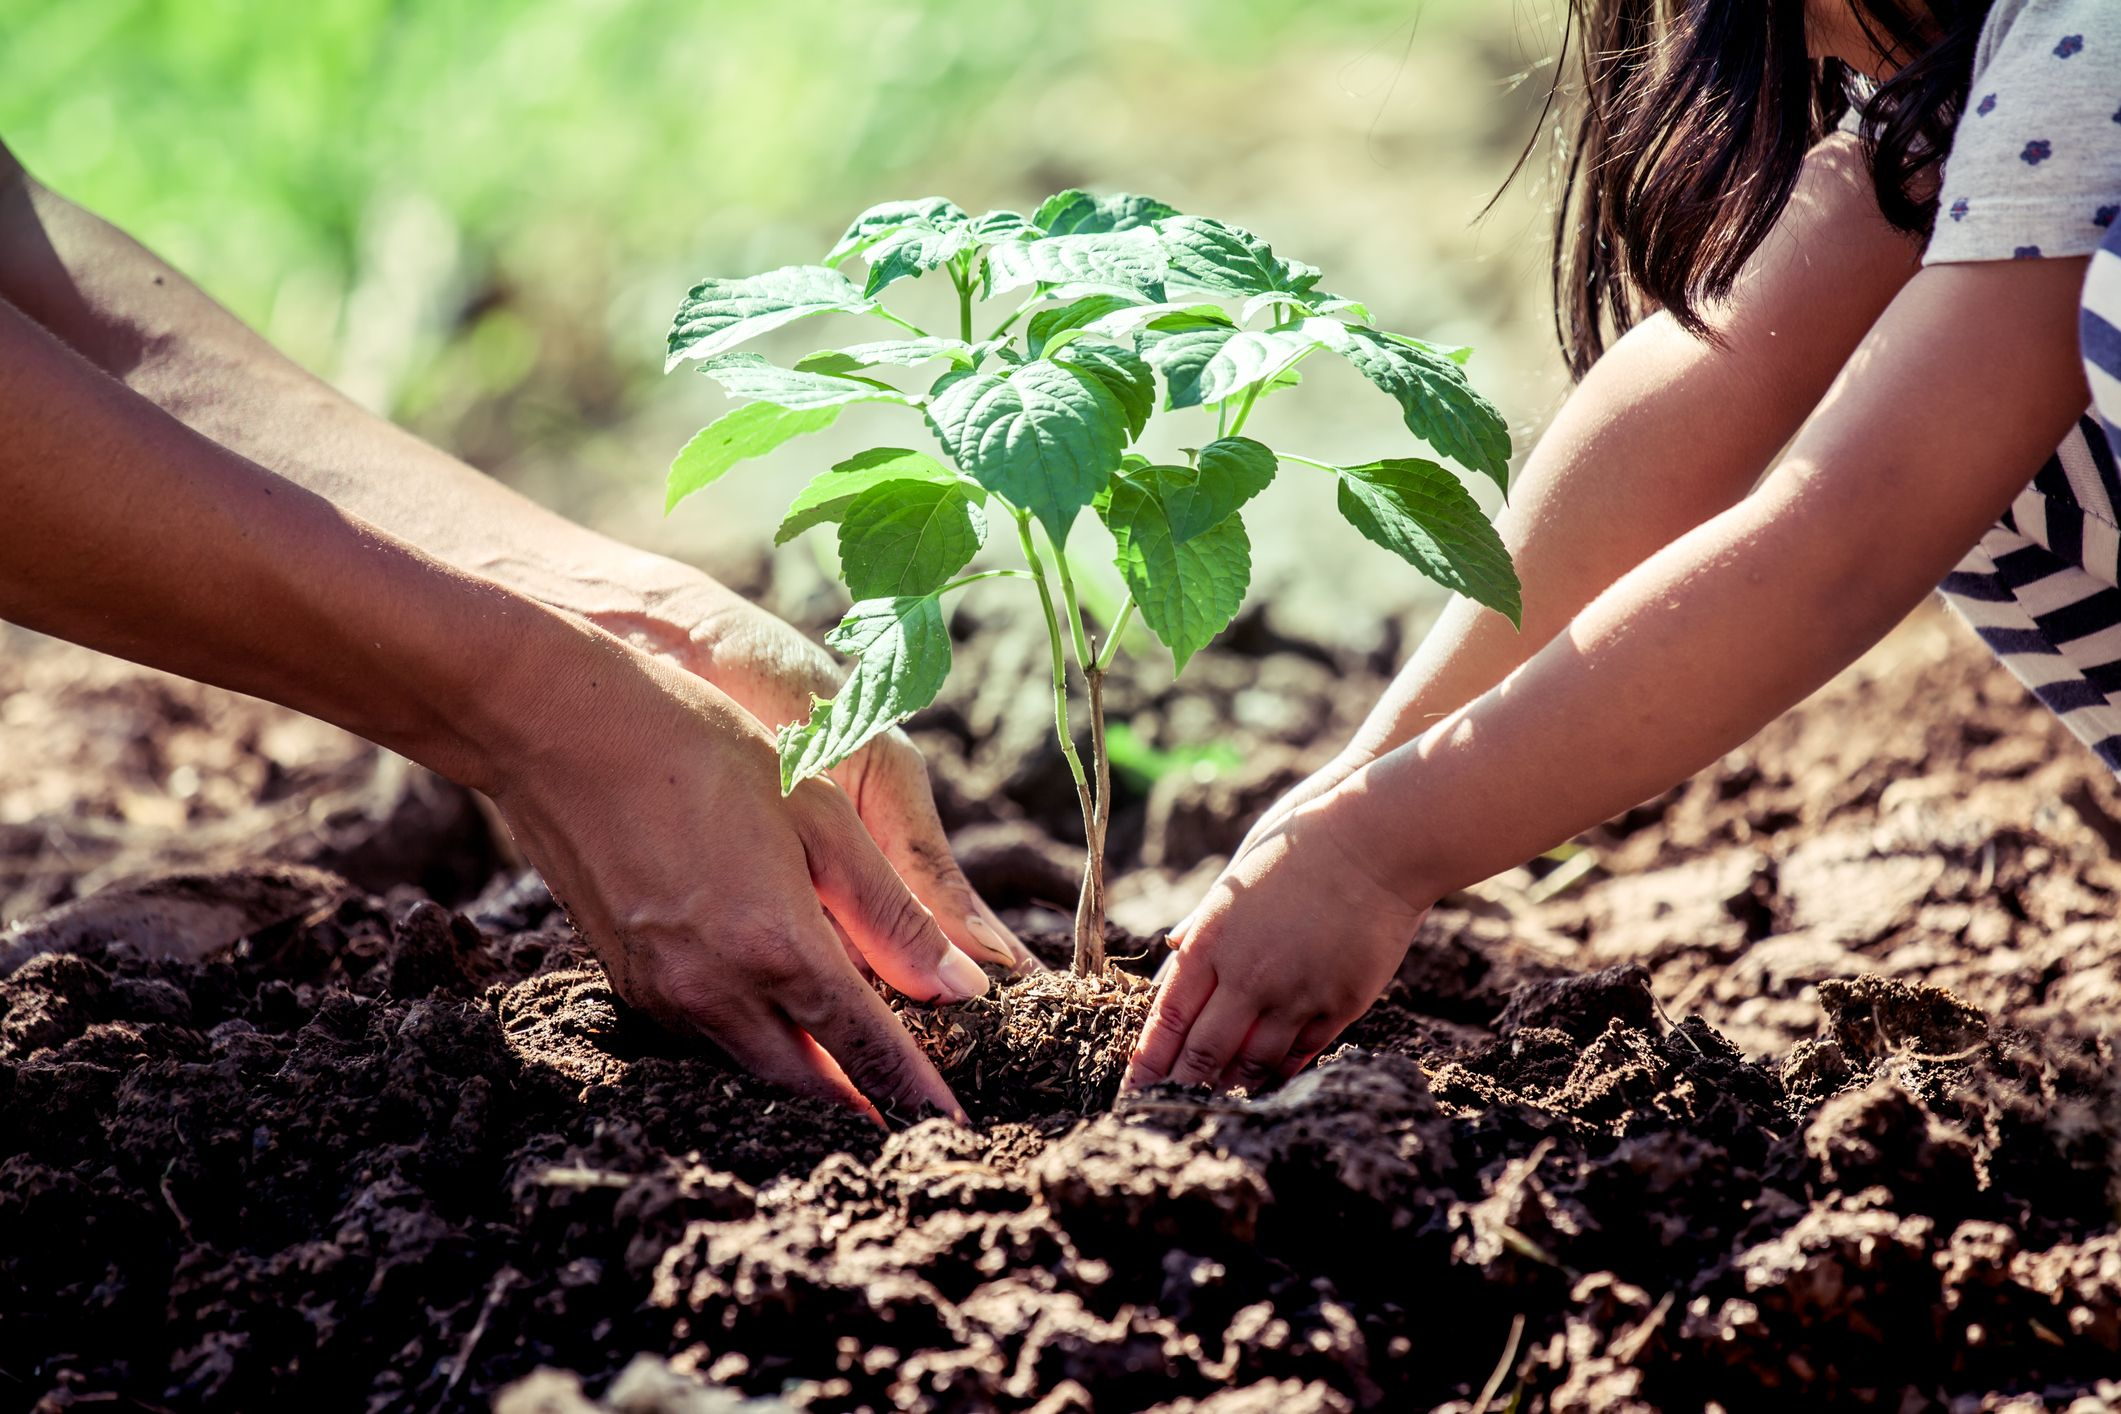 The Woodland Trust is calling on 1 million people to plant trees in a new campaign